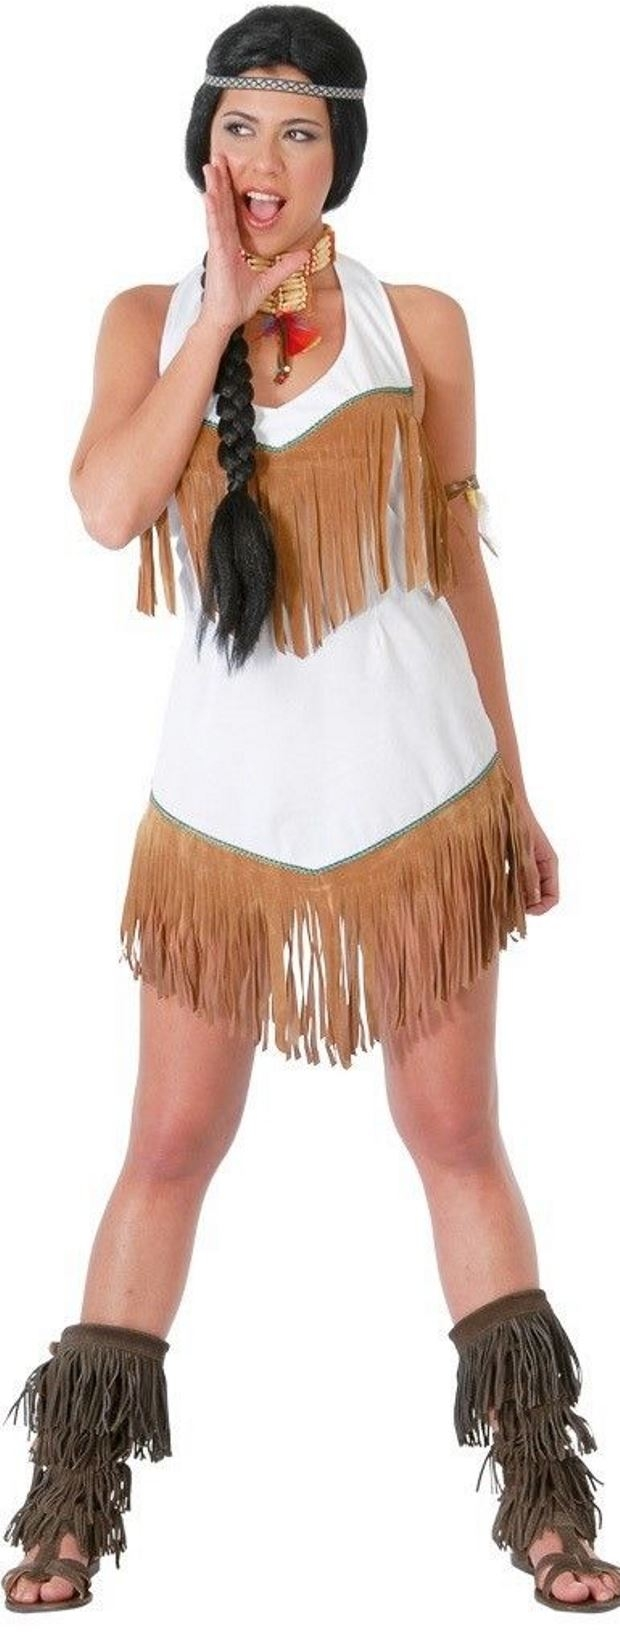 Ladies Red Indian Costume Adults Pocahontas Fancy Dress Native American Outfit